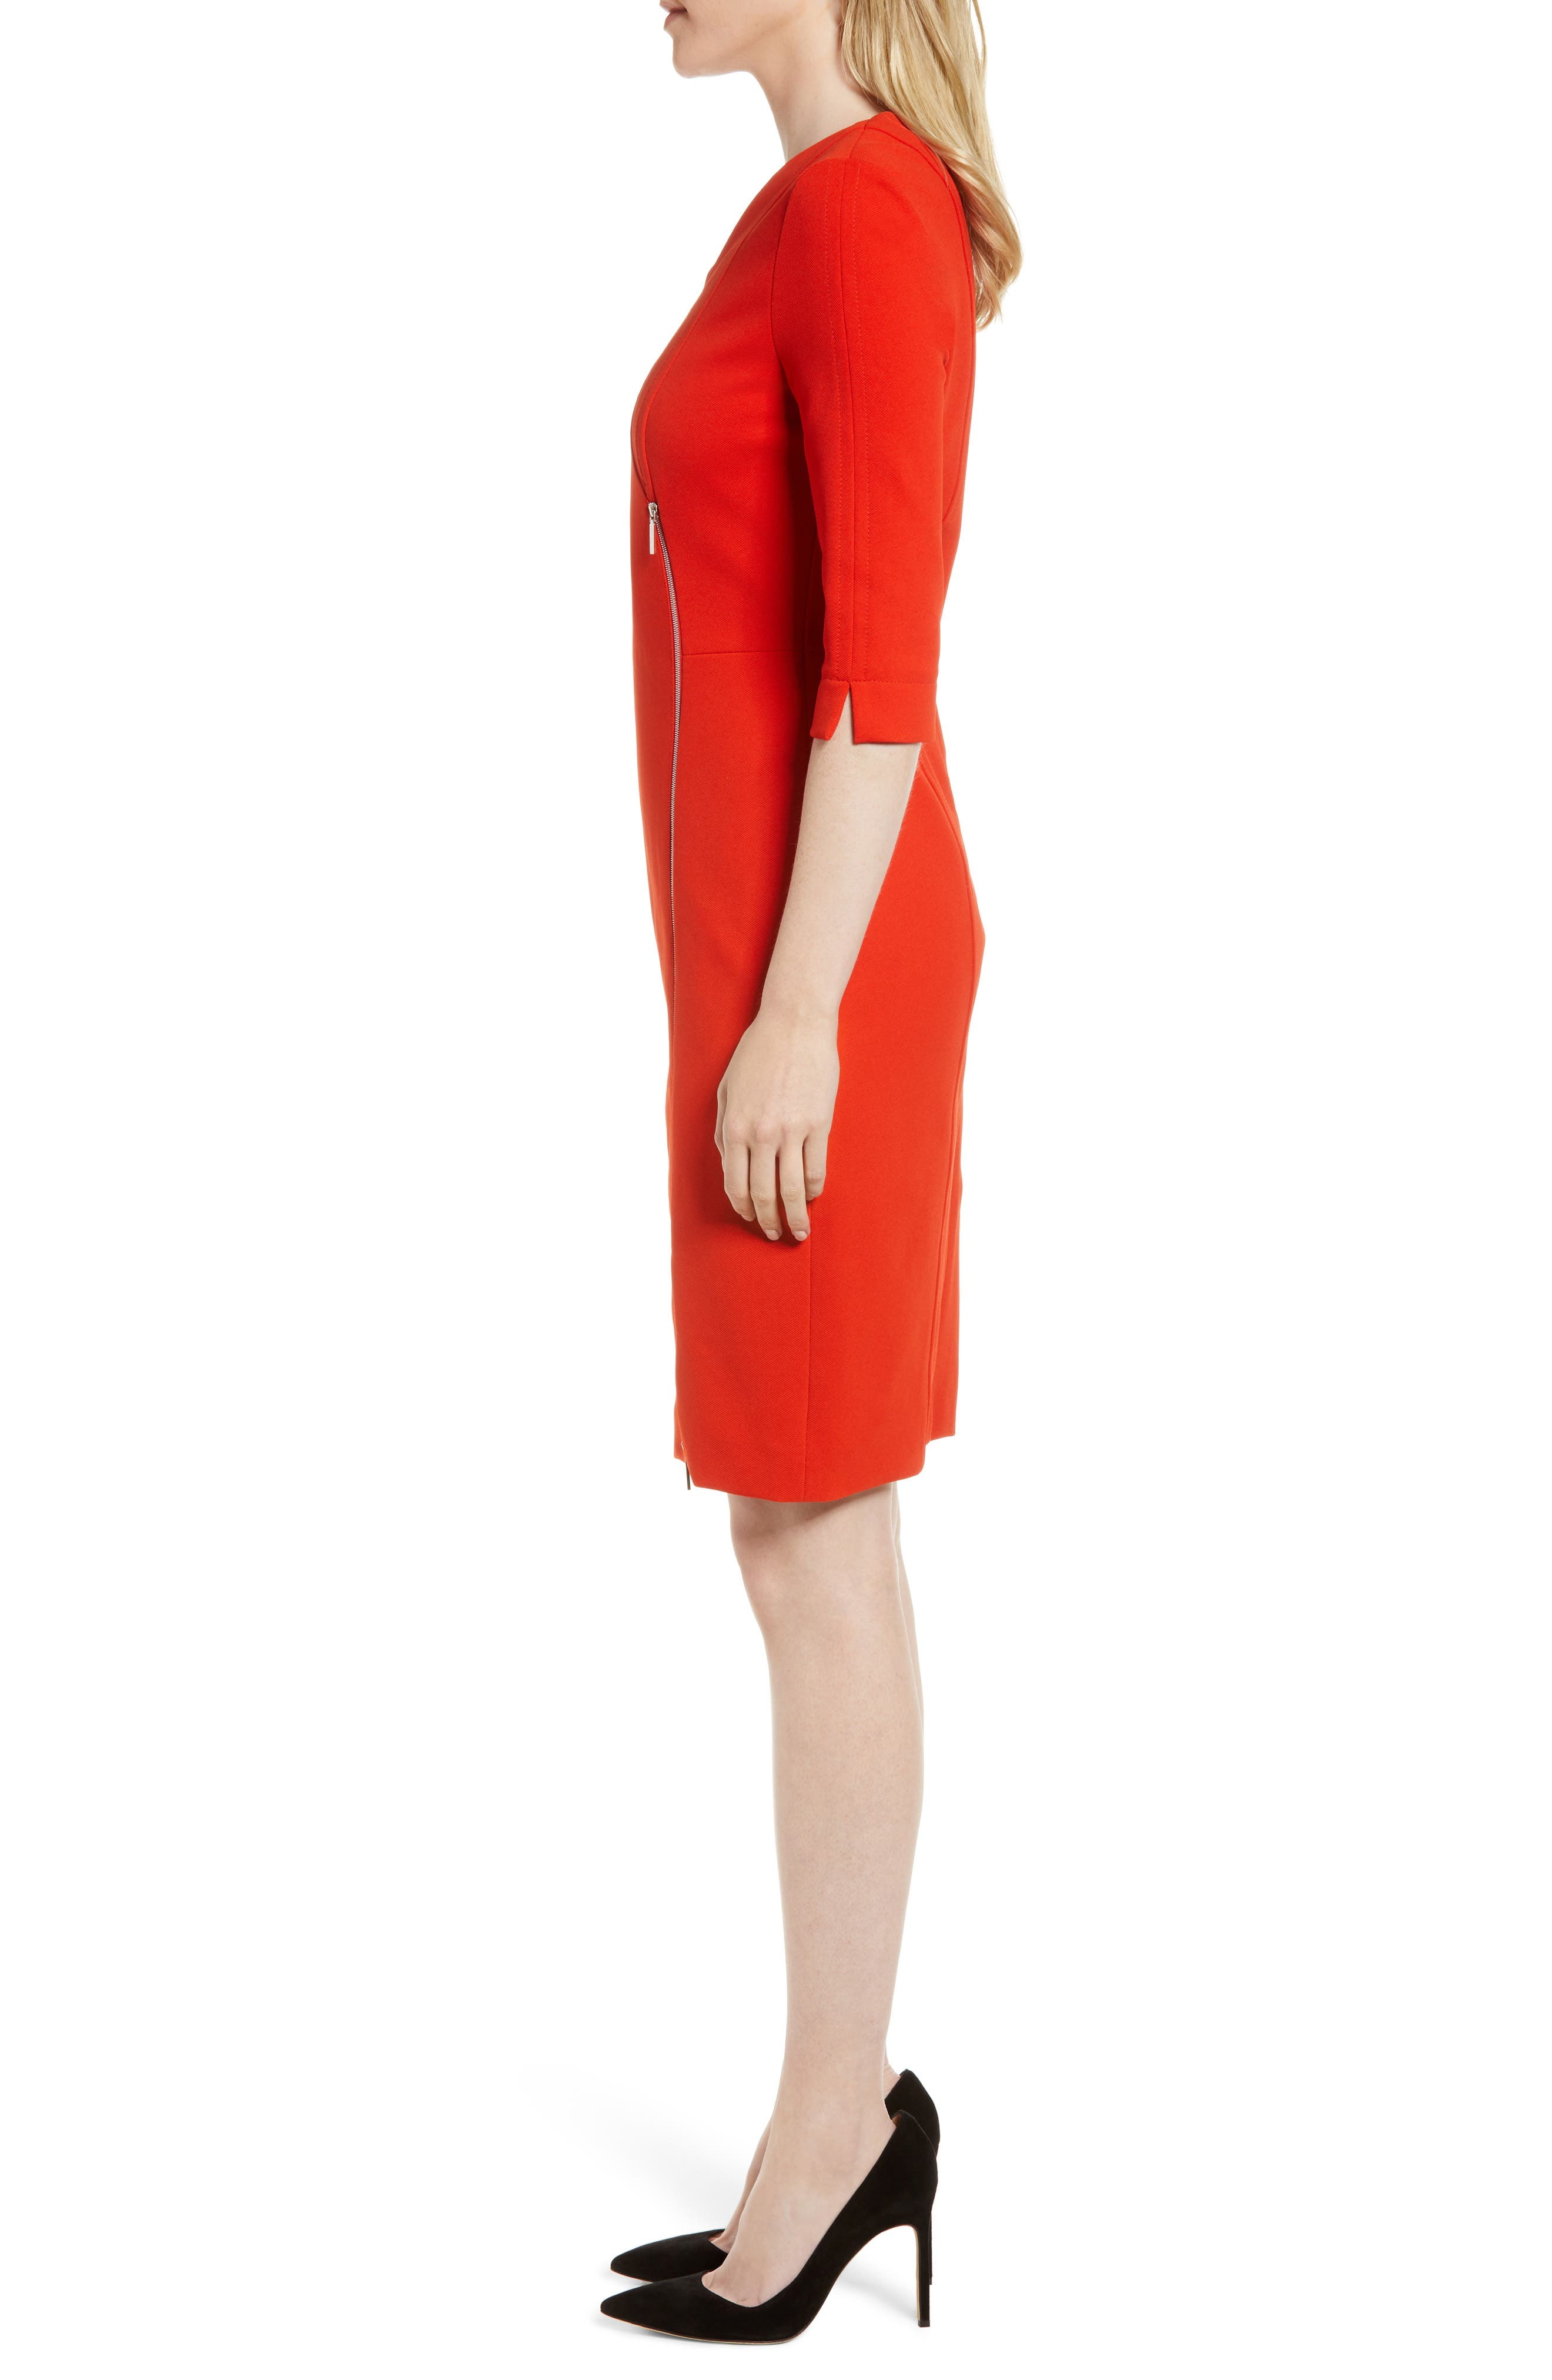 Deazema Twill Jersey Dress,                             Alternate thumbnail 3, color,                             824